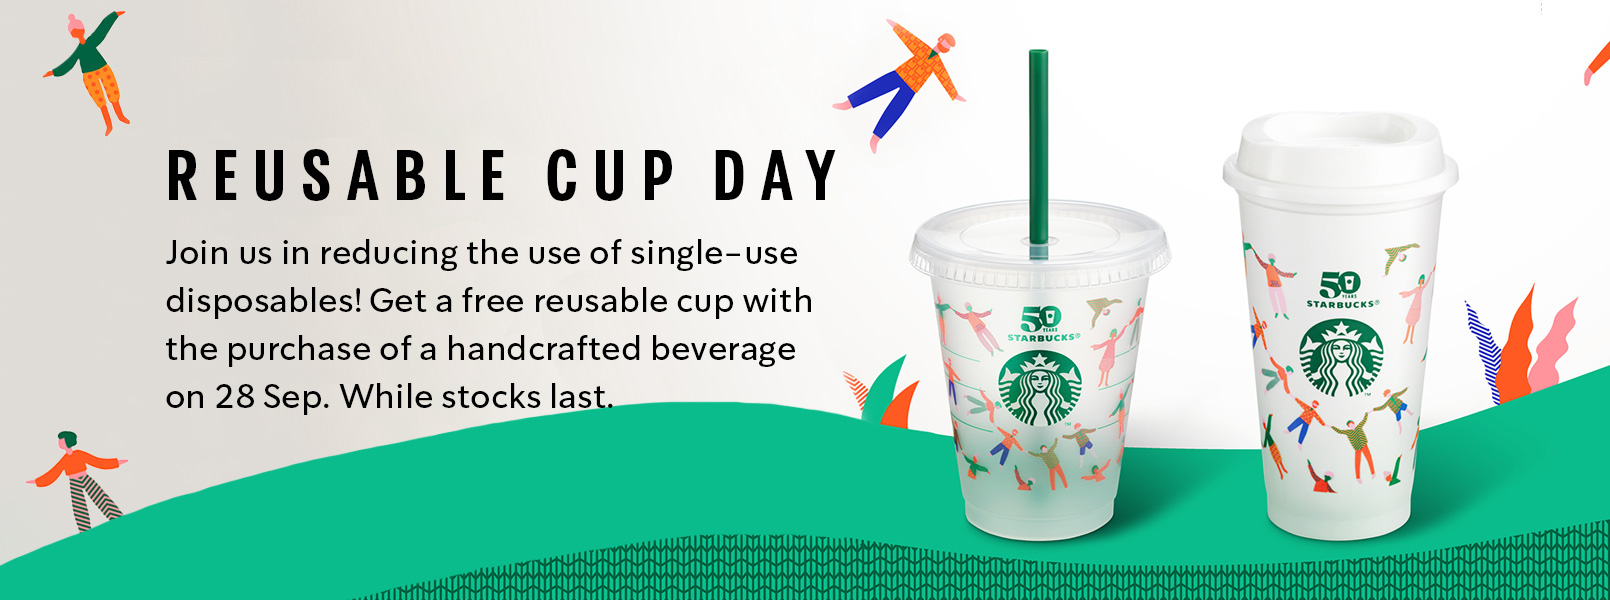 Starbucks offers free 50th anniversary reusable cup when you buy any handcrafted beverage on 28 September - Alvinology